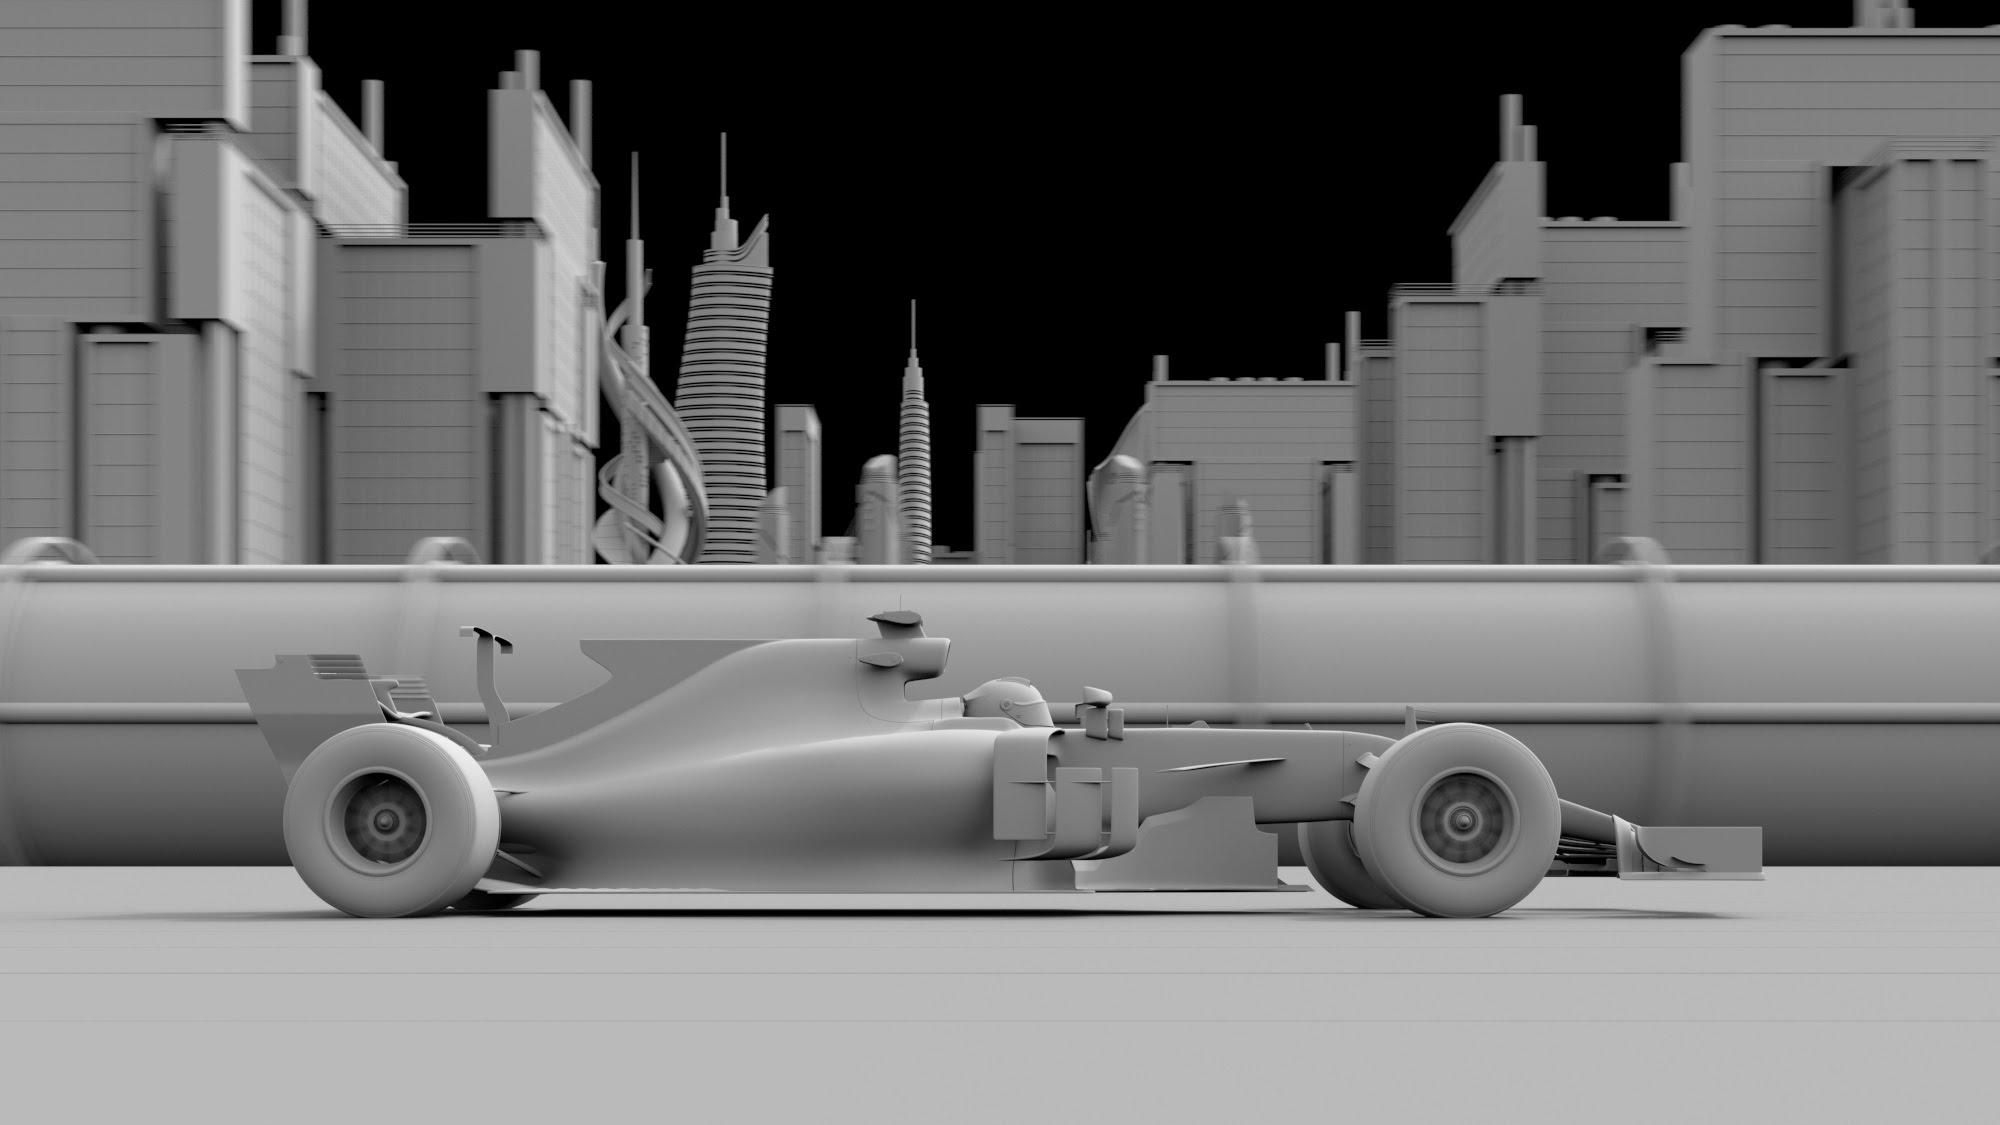 F1_SideView_01A.jpg